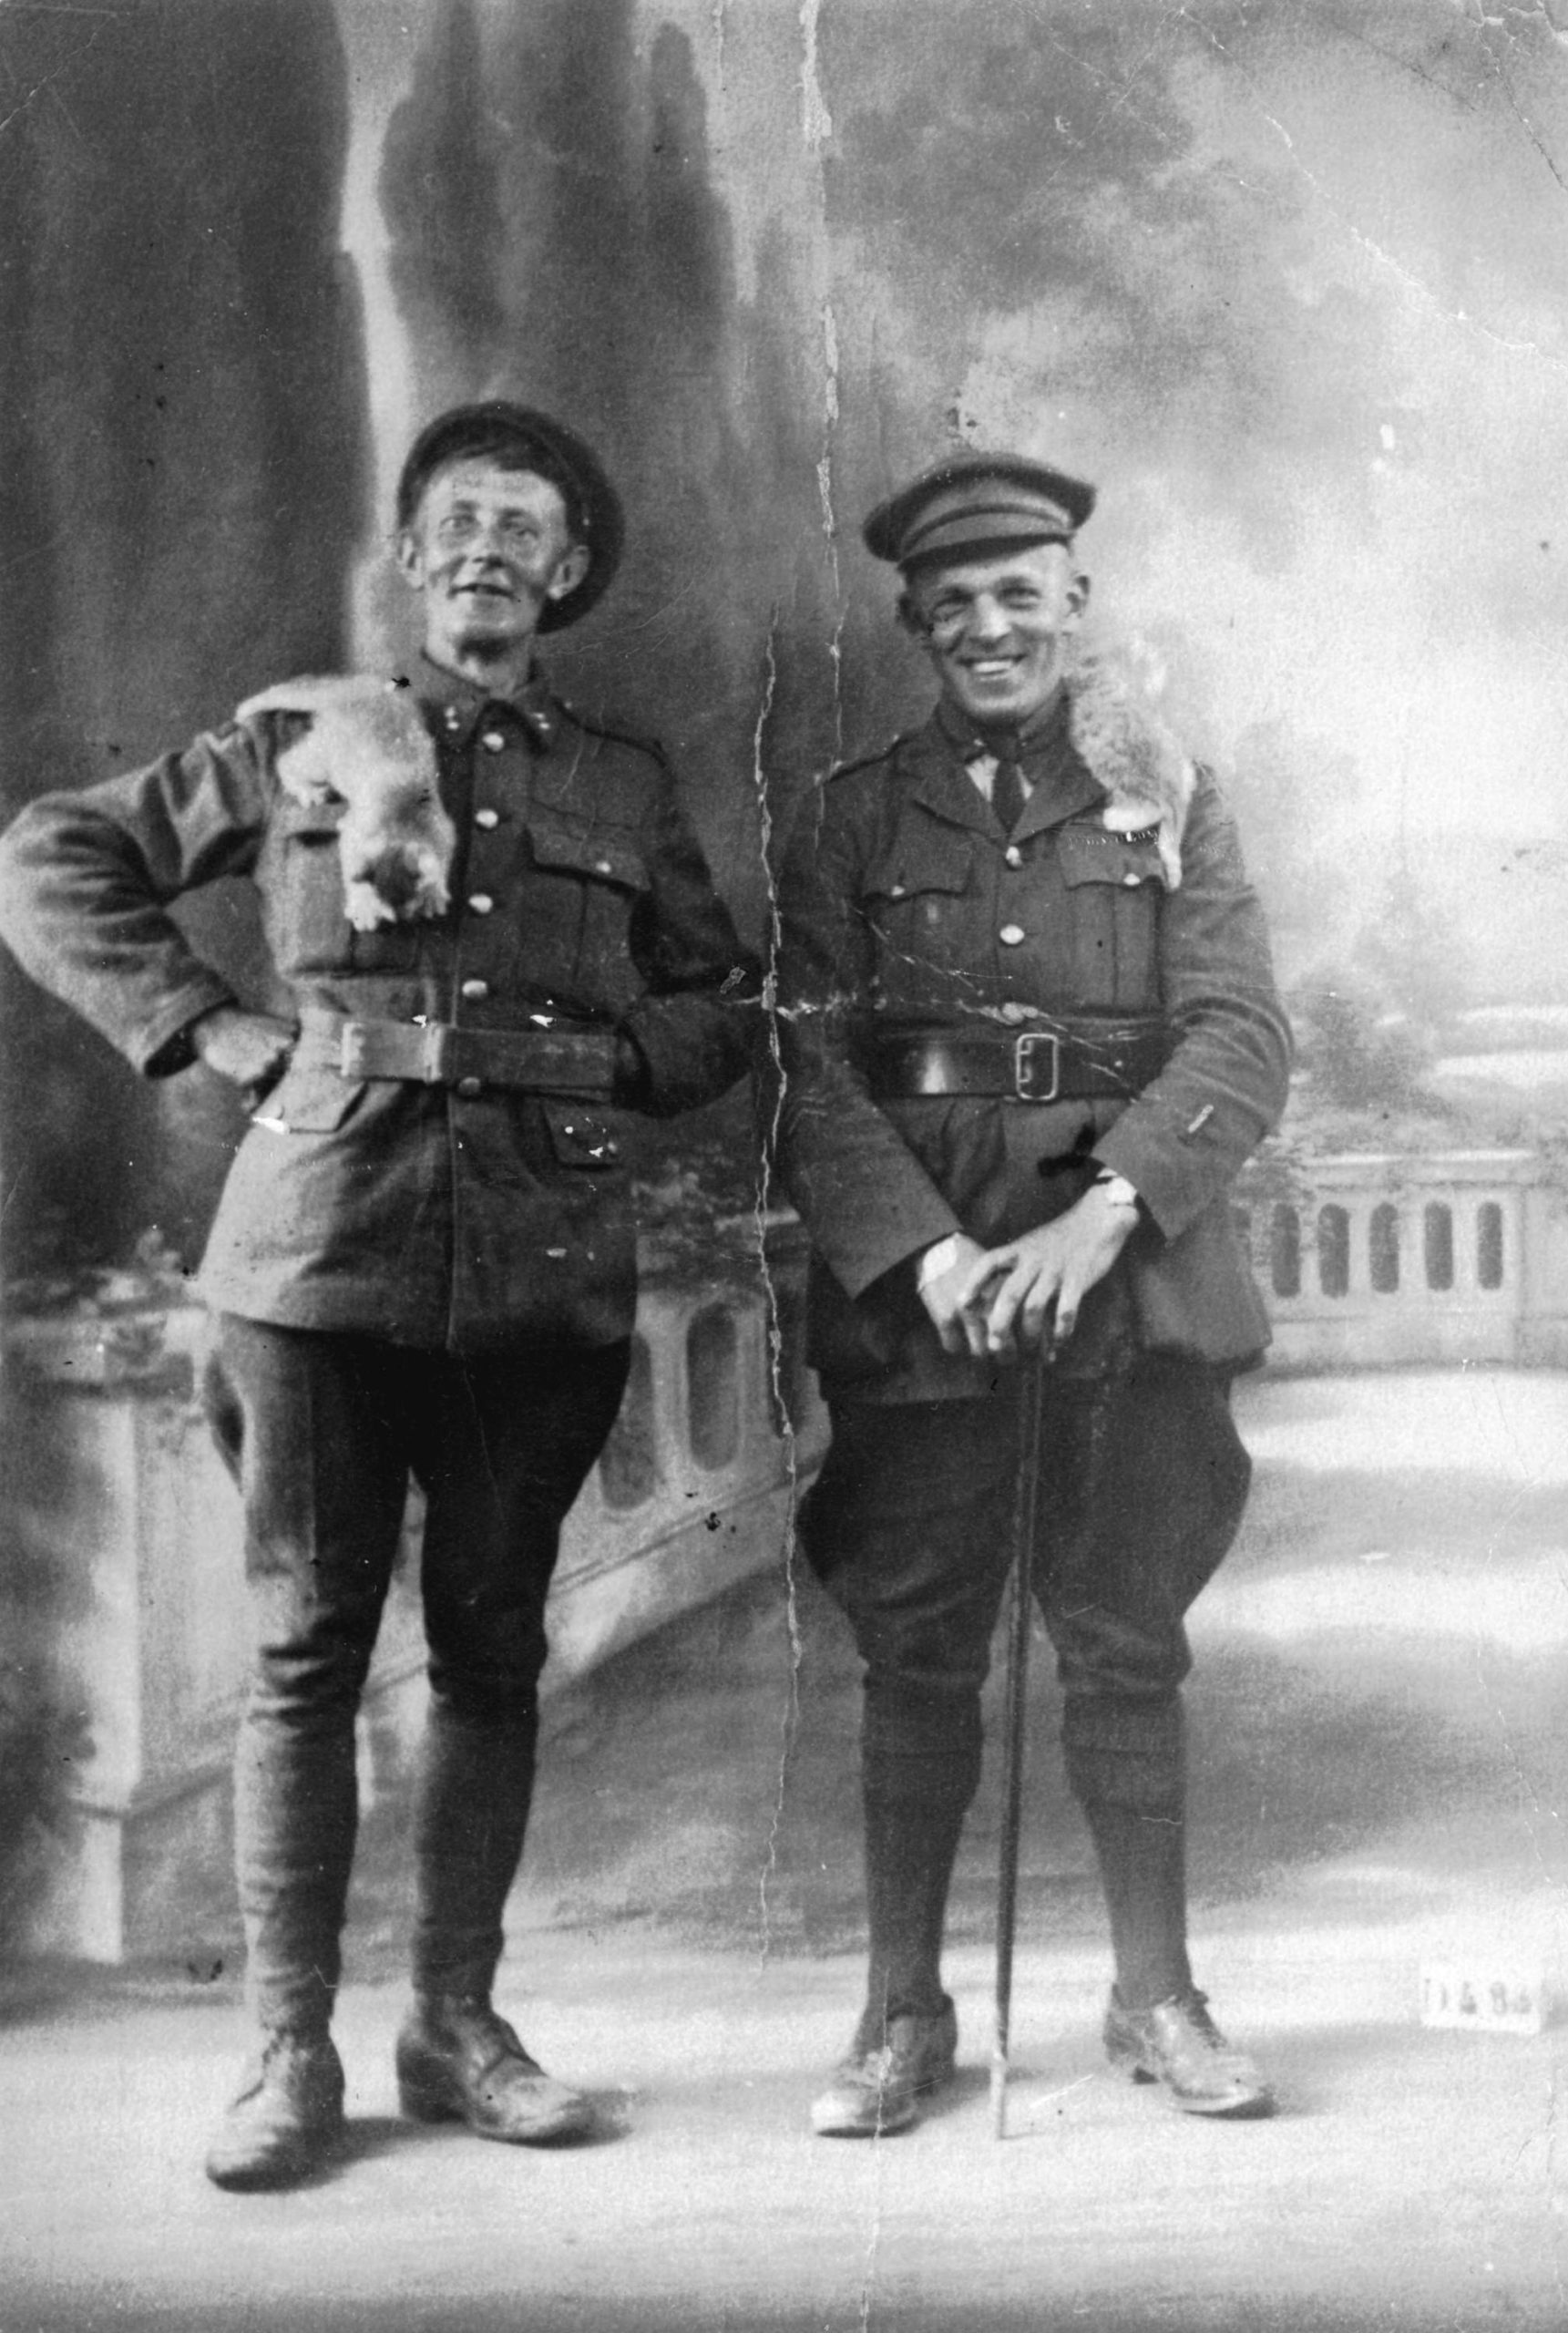 Two young men in military uniforms pose in a photo studio. Each has a cat on his shoulder.